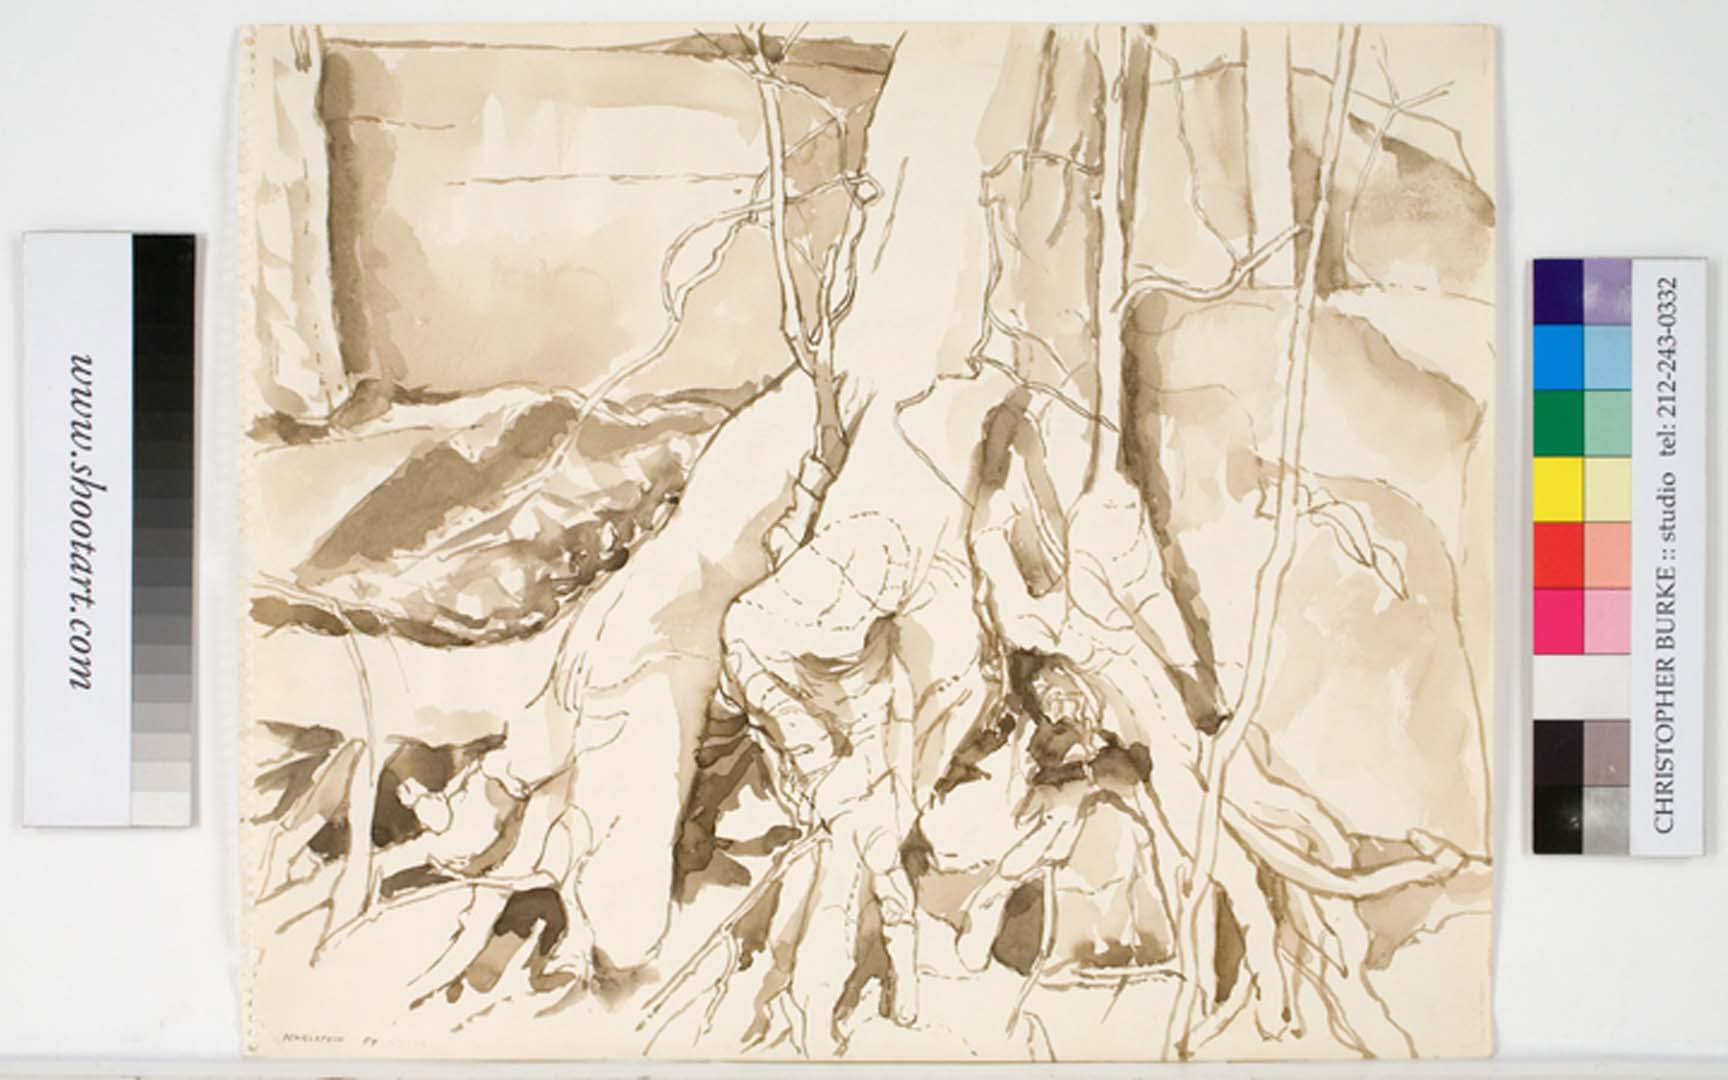 1959 Tree Roots Clutching Sepia Wash on Paper 13.875 x 16.75